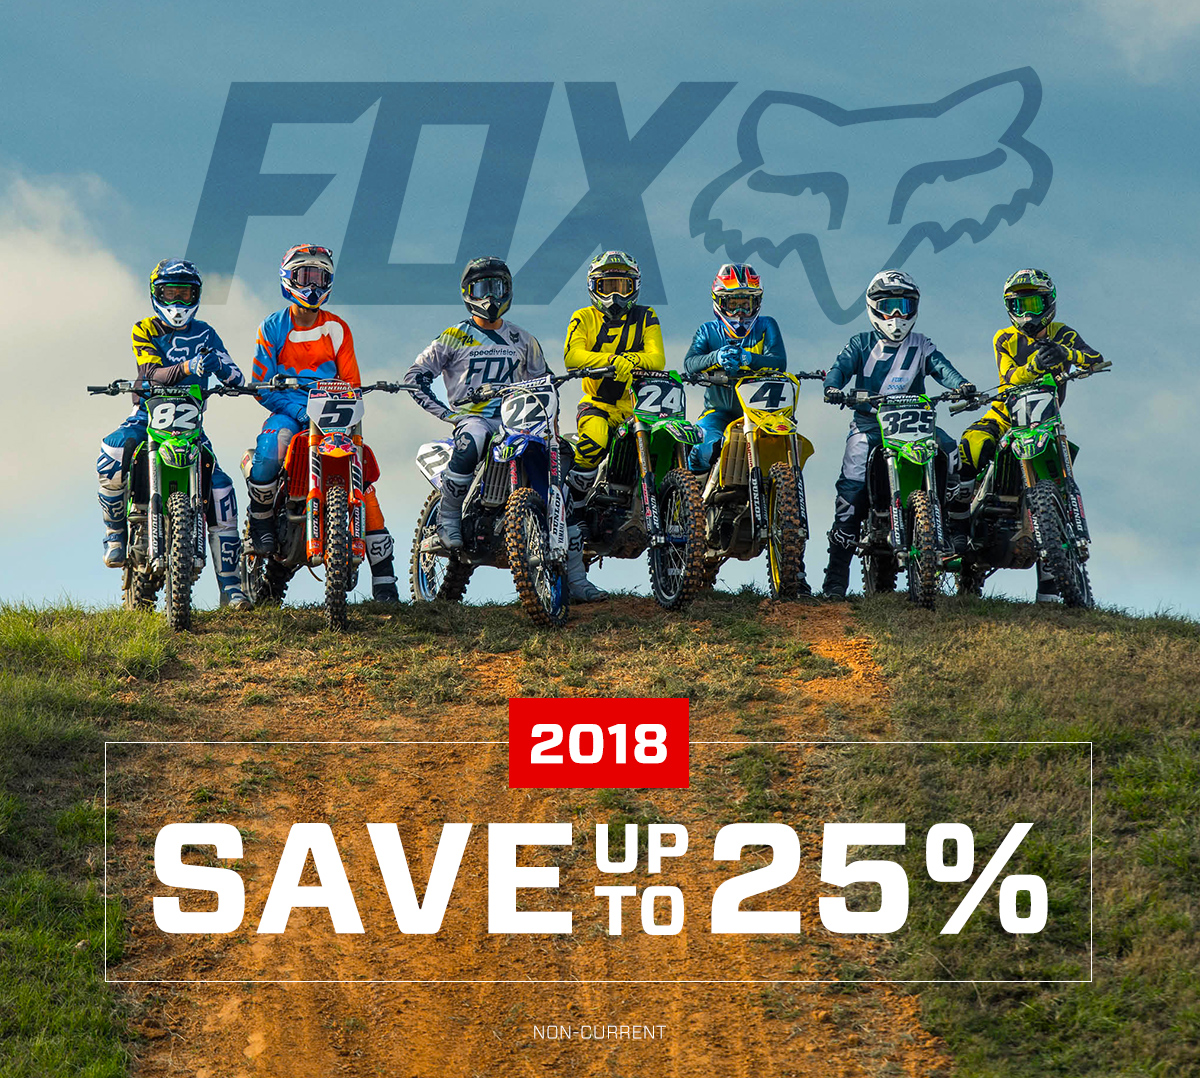 Save Up To 25% On 2018 Fox Racing